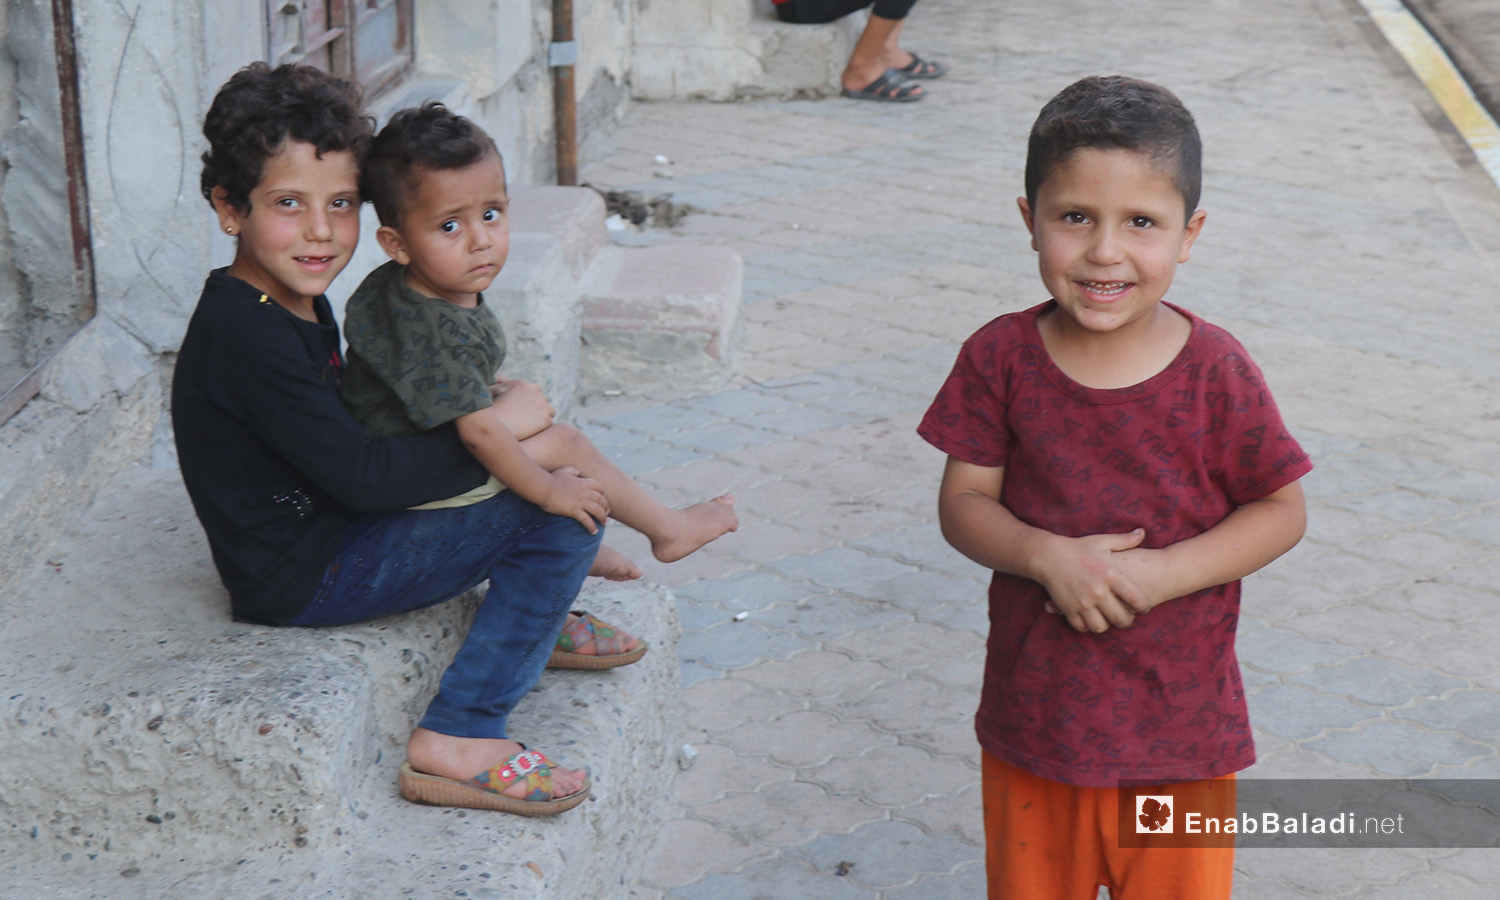 A group of children in al-Raqqa city – 26 July 2020 (Enab Baladi / Abdul Aziz Saleh)